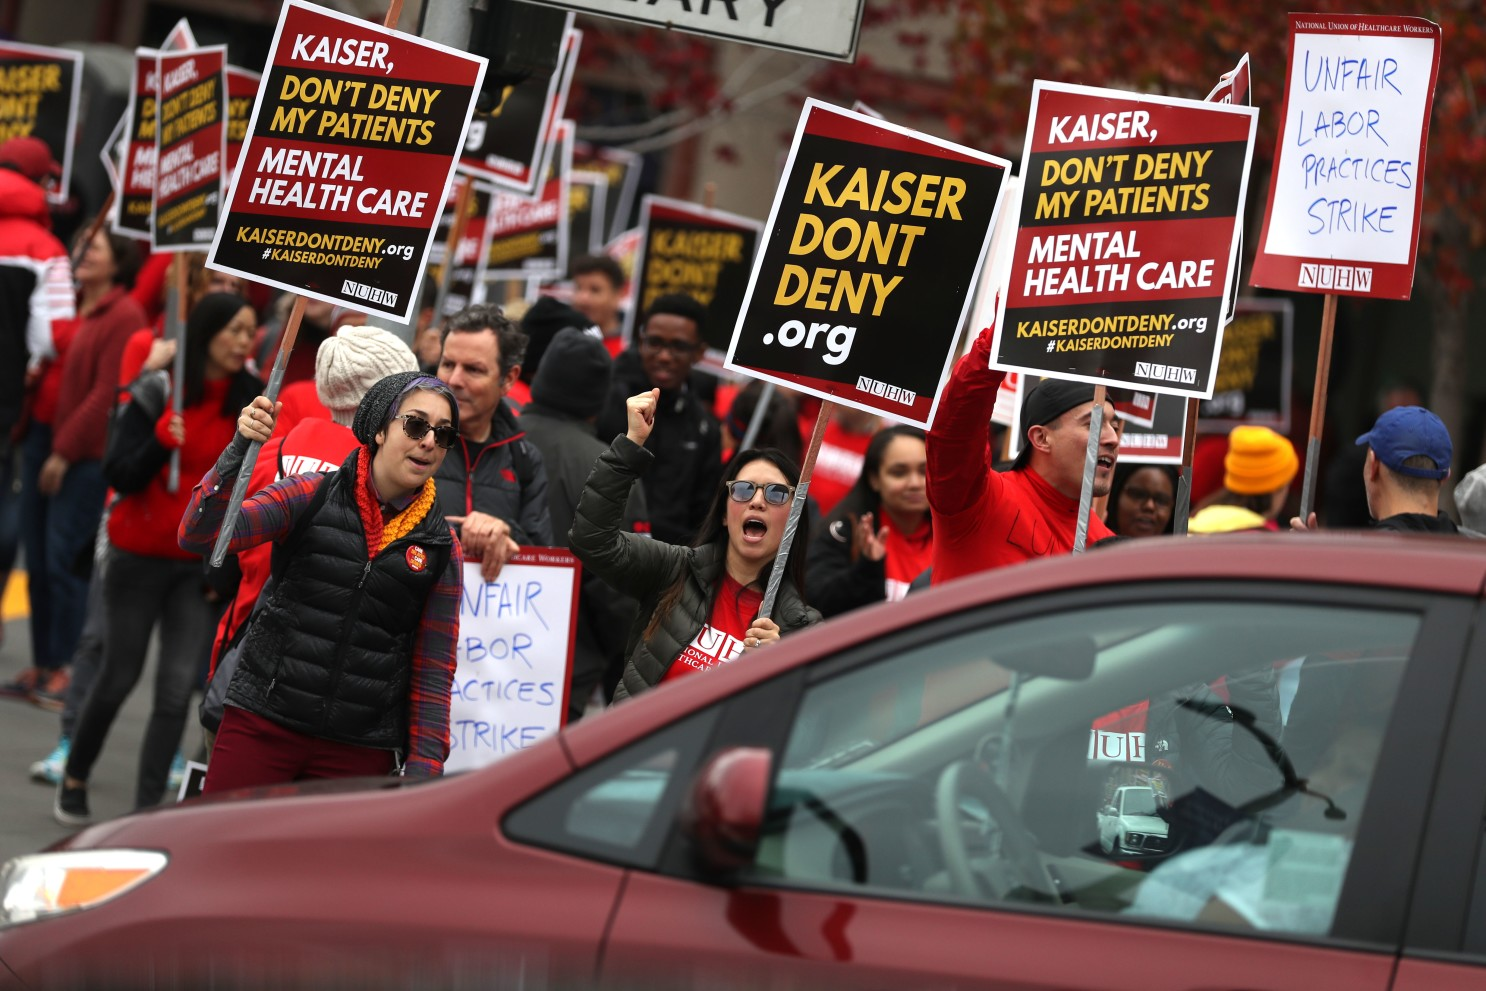 Healthcare workers dressed in red hold up protest signs against Kaiser Permanente while a car drives by.